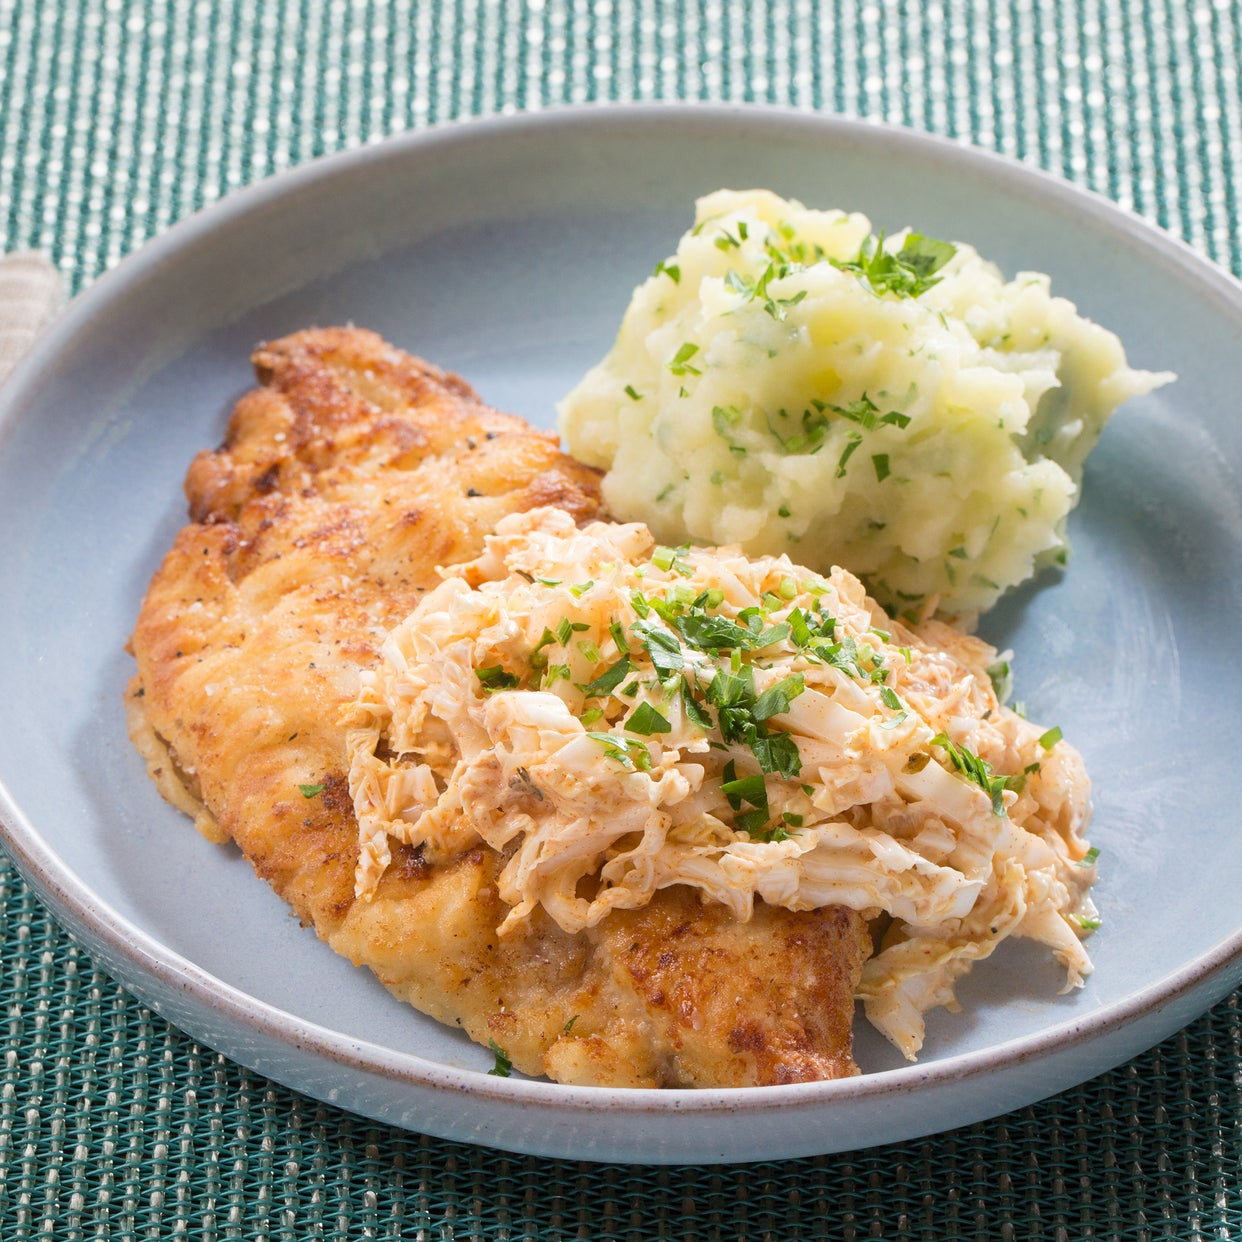 Crispy Catfish & Parsley Mashed Potatoes with Spicy Cajun Slaw